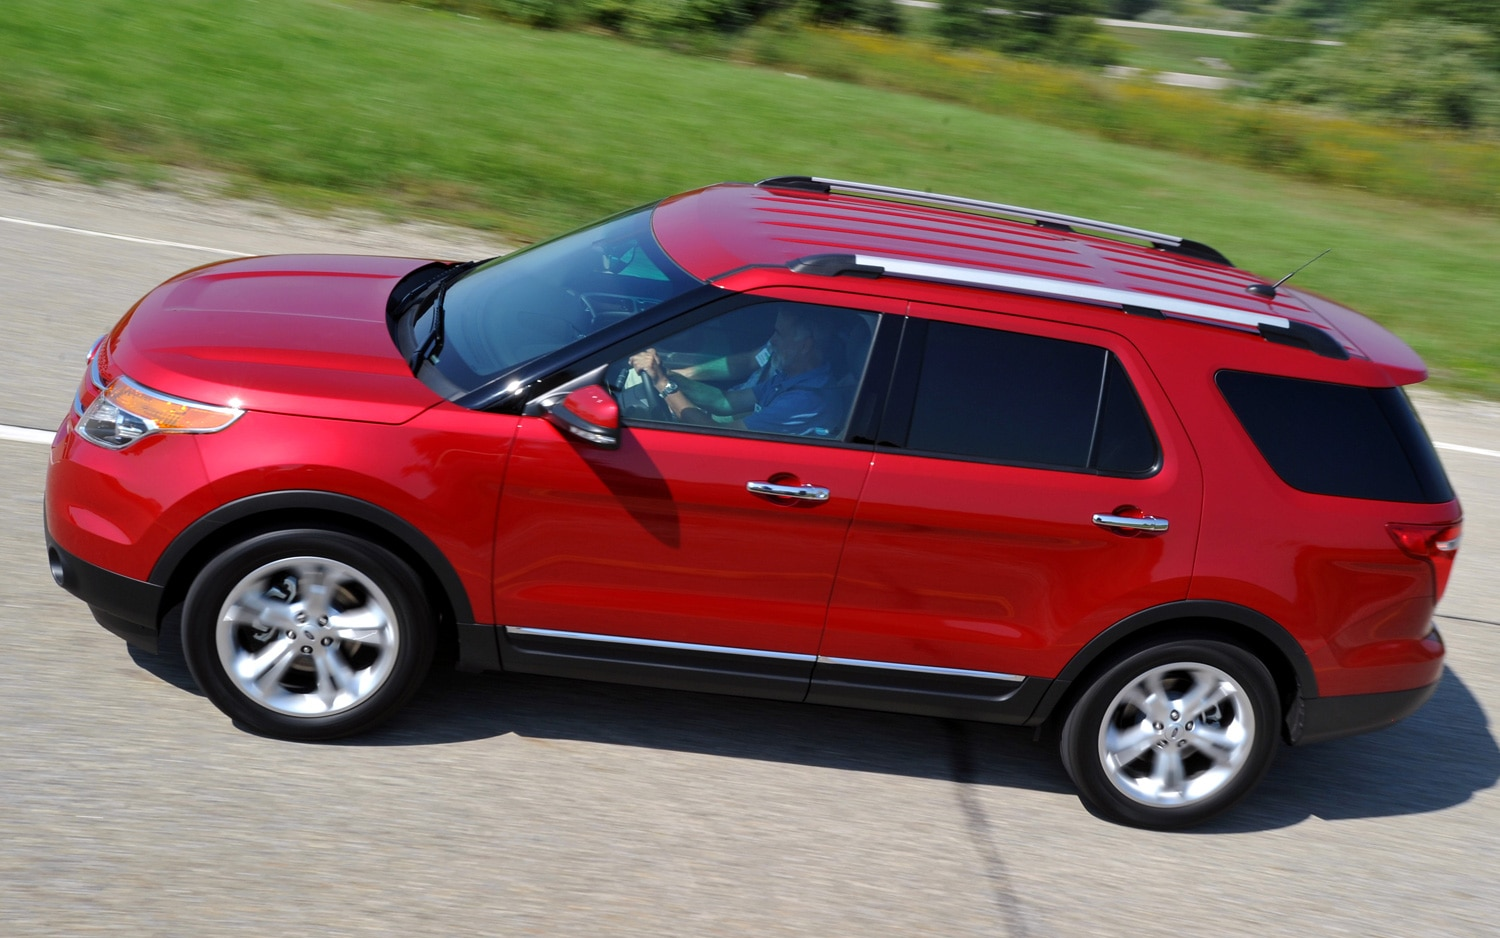 2012 Ford Explorer Top View1